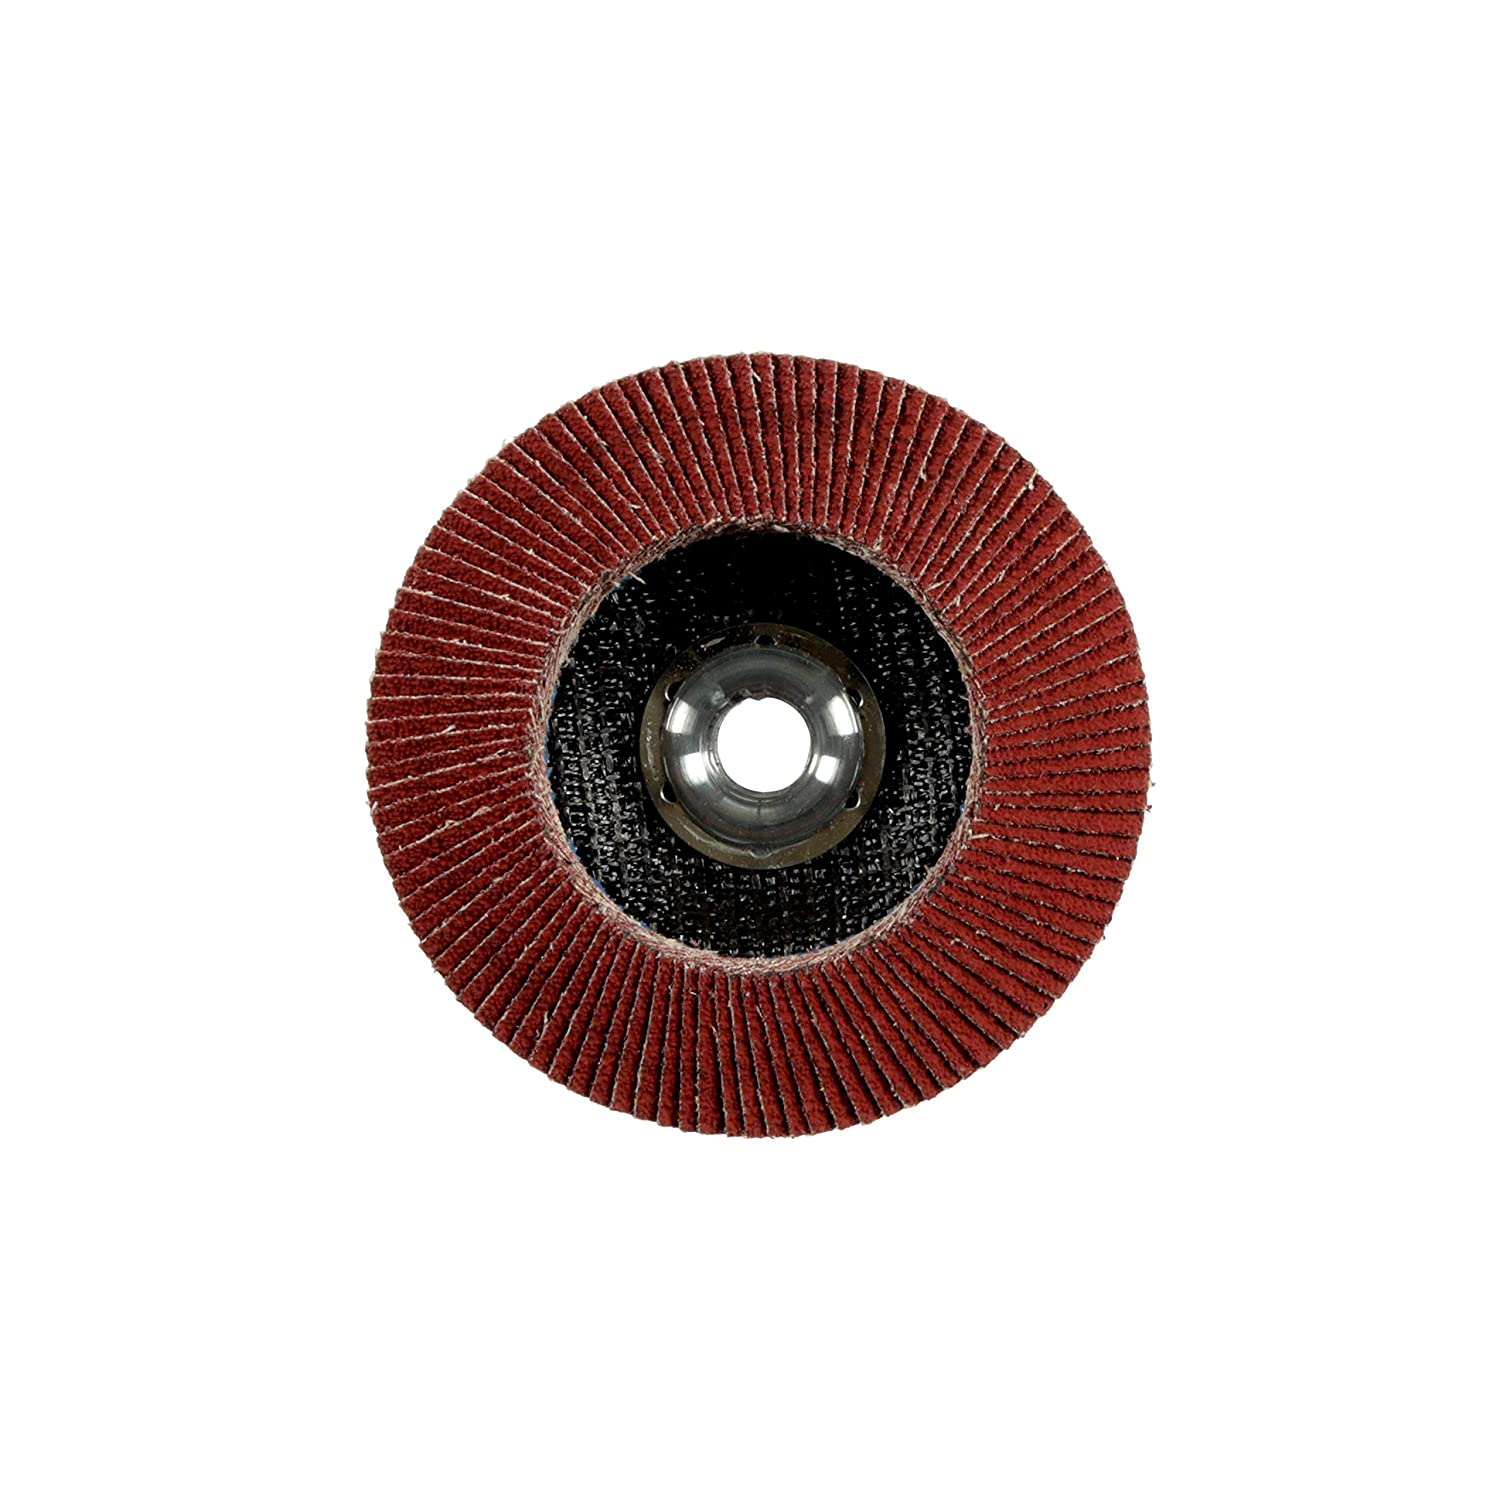 10 per case Standard Abrasives Ceramic Pro Type 27 Flap Disc 645111 4-1//2 in x 7//8 80 Y-Weight